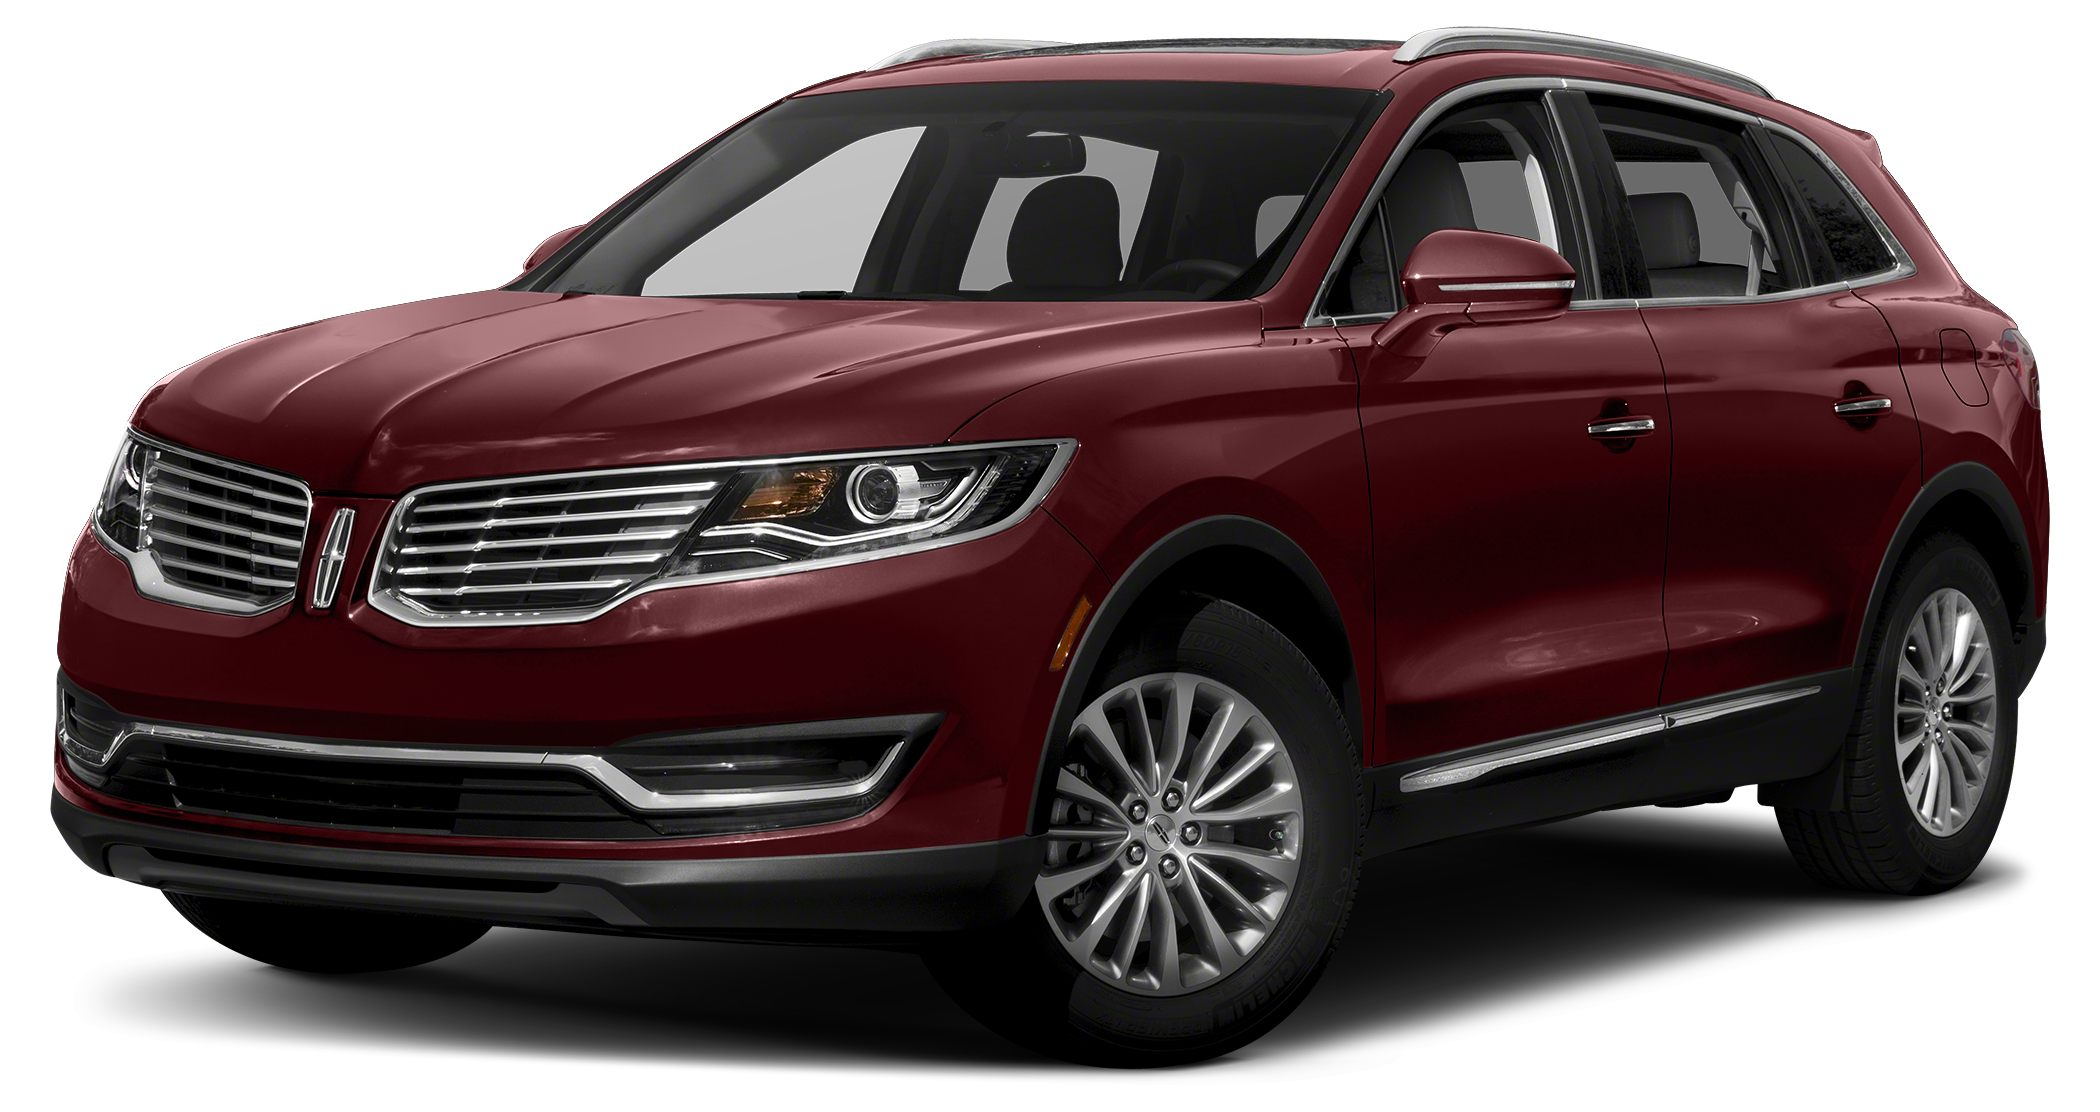 2016 Lincoln MKX Select Miles 10Color Red Stock 16X50 VIN 2LMTJ6KR7GBL60769